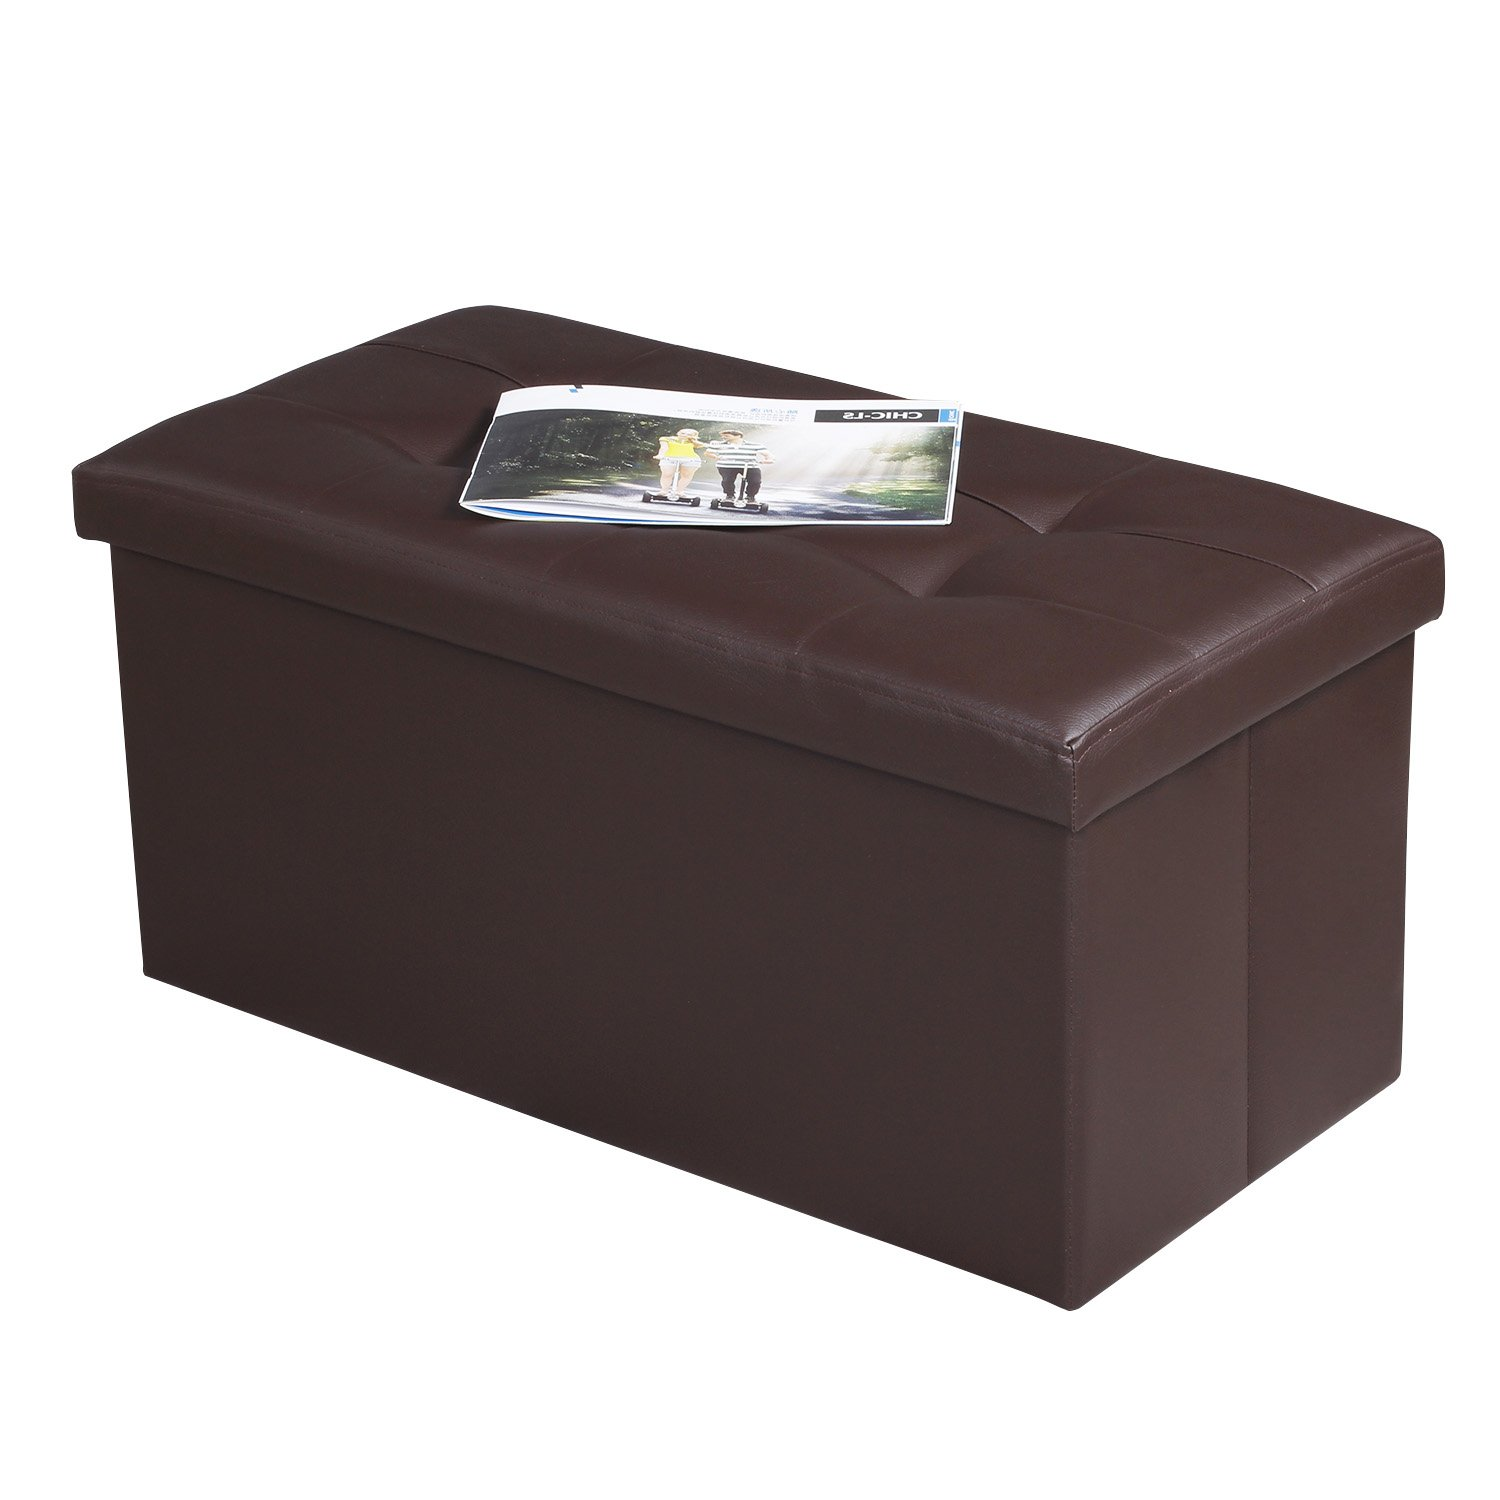 EPCTEK Storage Ottoma Leather Folding Stool,Storage Cube Basket Bins Organizer Containers, Coffee Table Cube, Camping Fishing Stool, Quick and Easy Assembly, Perfect for Child,30''x15''x15'' Cube.(Brown)